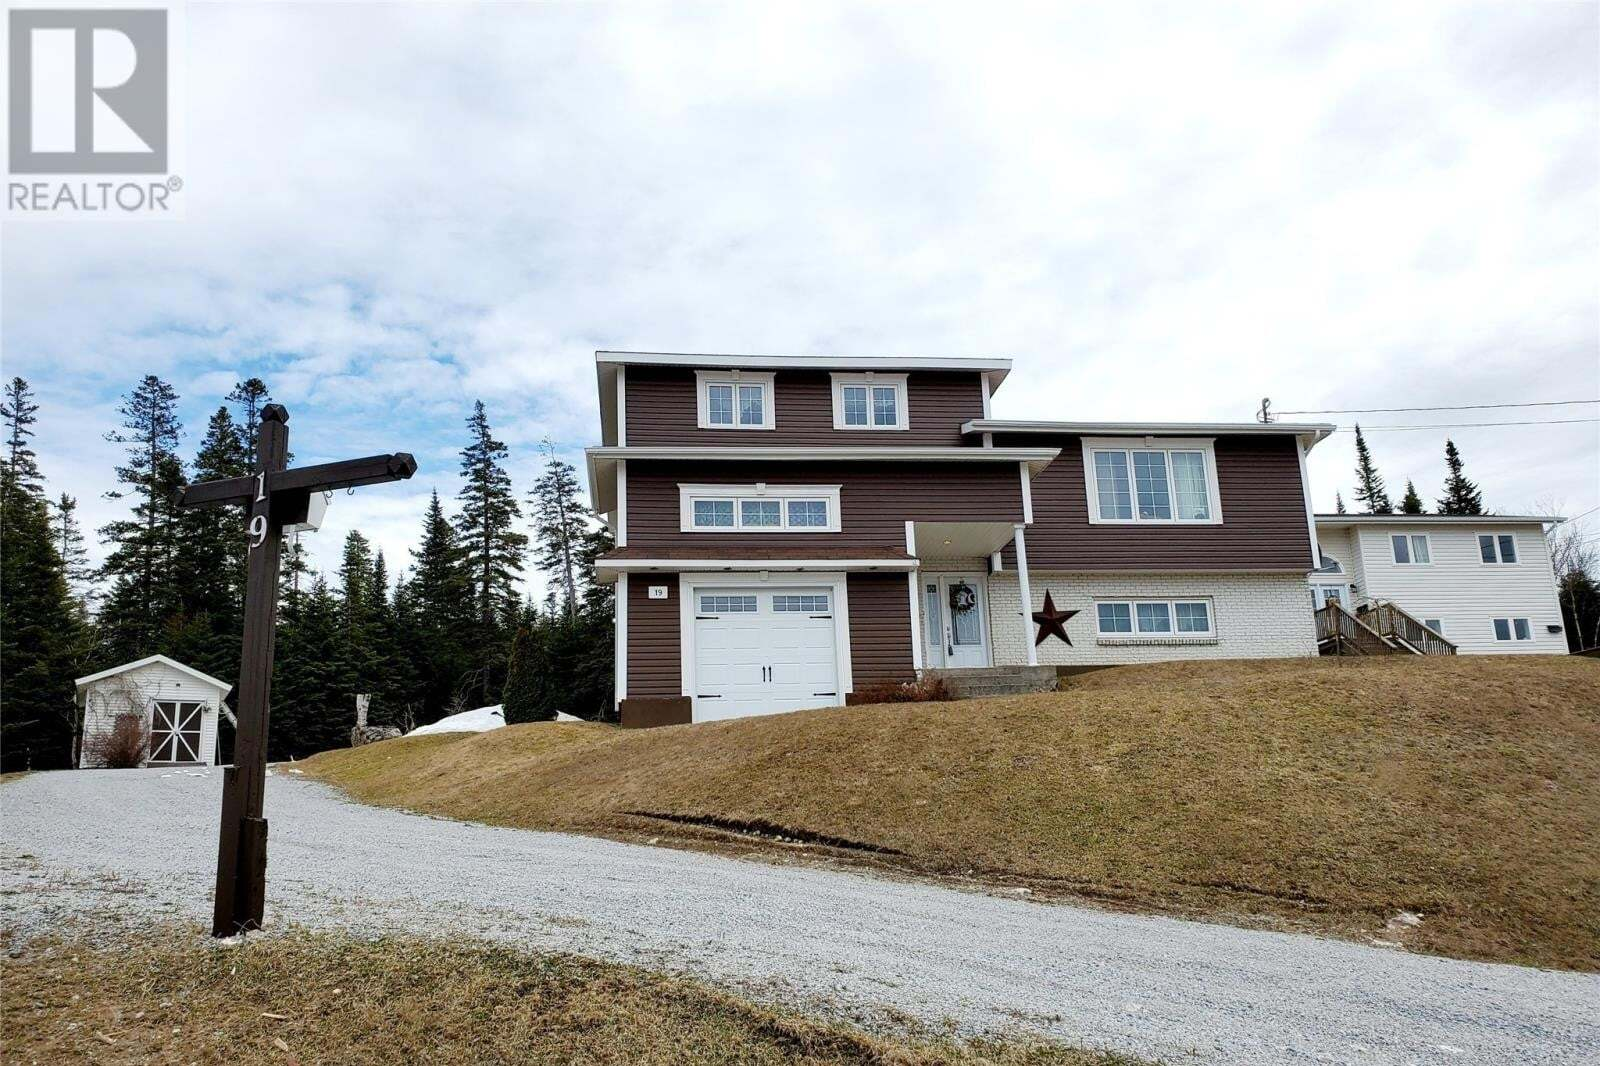 House for sale at 19 Lady Diana Cres Massey Drive Newfoundland - MLS: 1213074